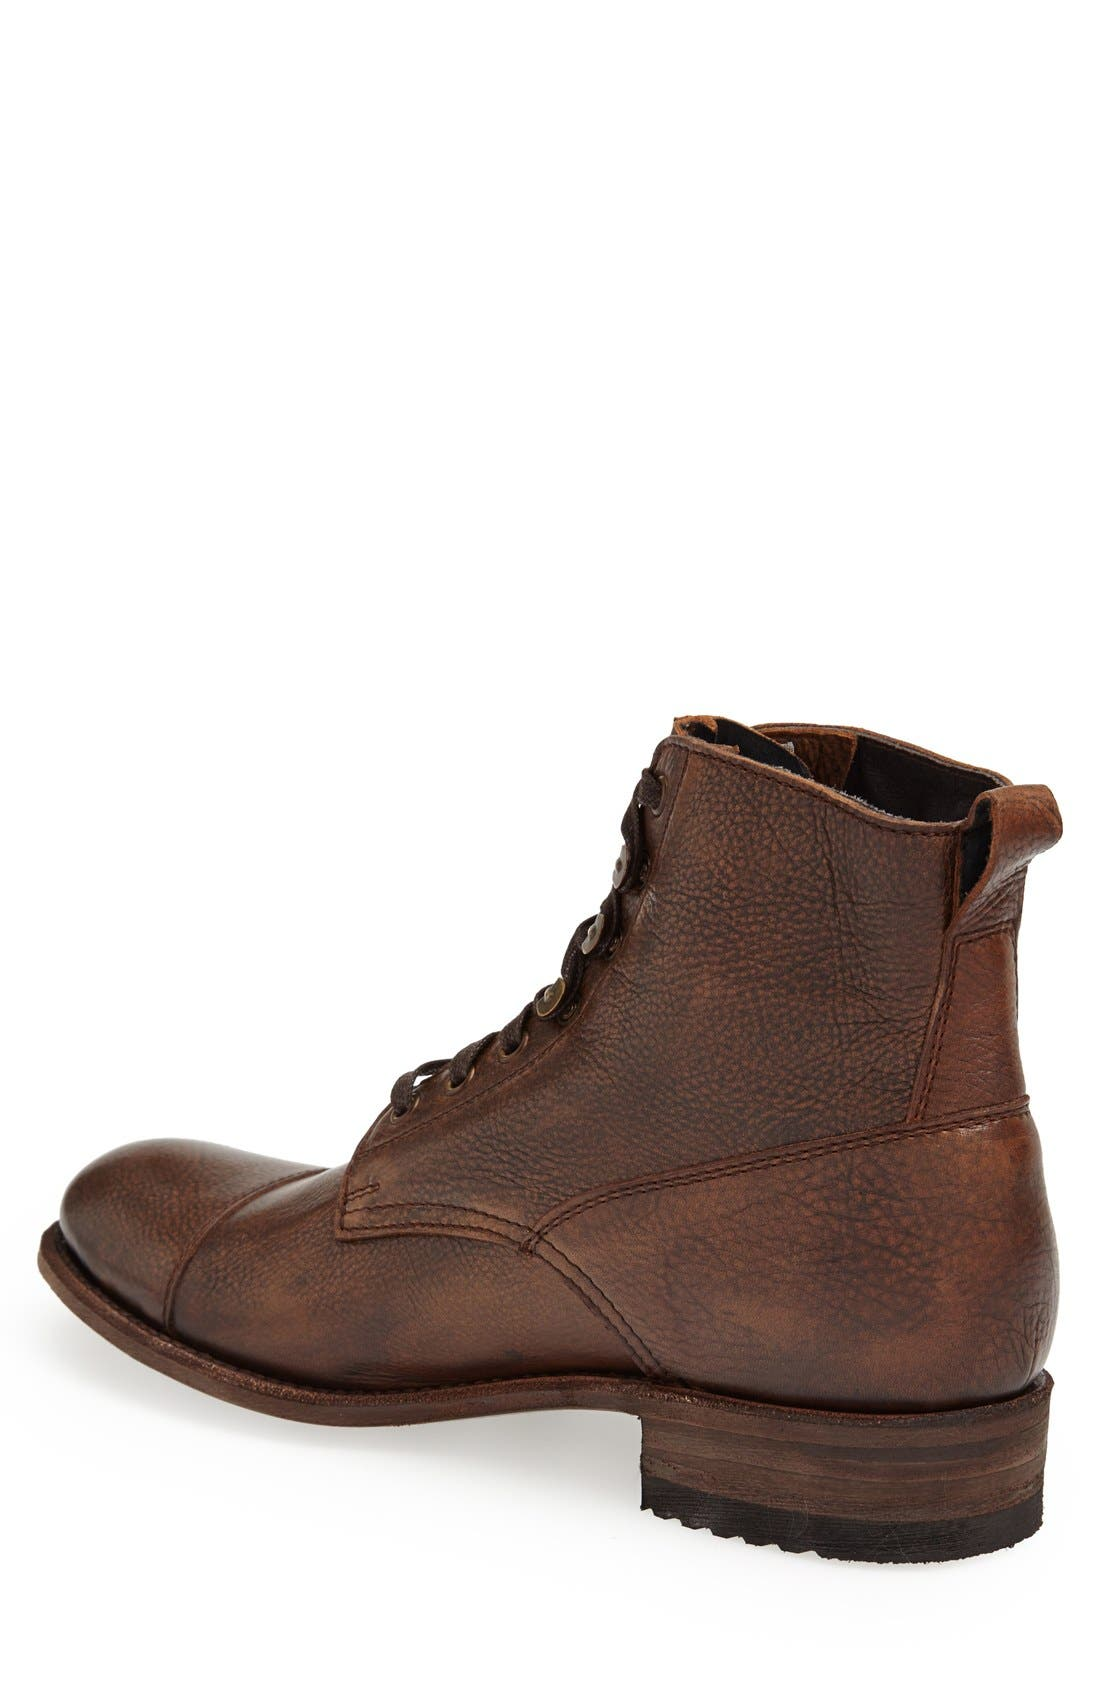 'Station' Cap Toe Boot,                             Alternate thumbnail 2, color,                             200